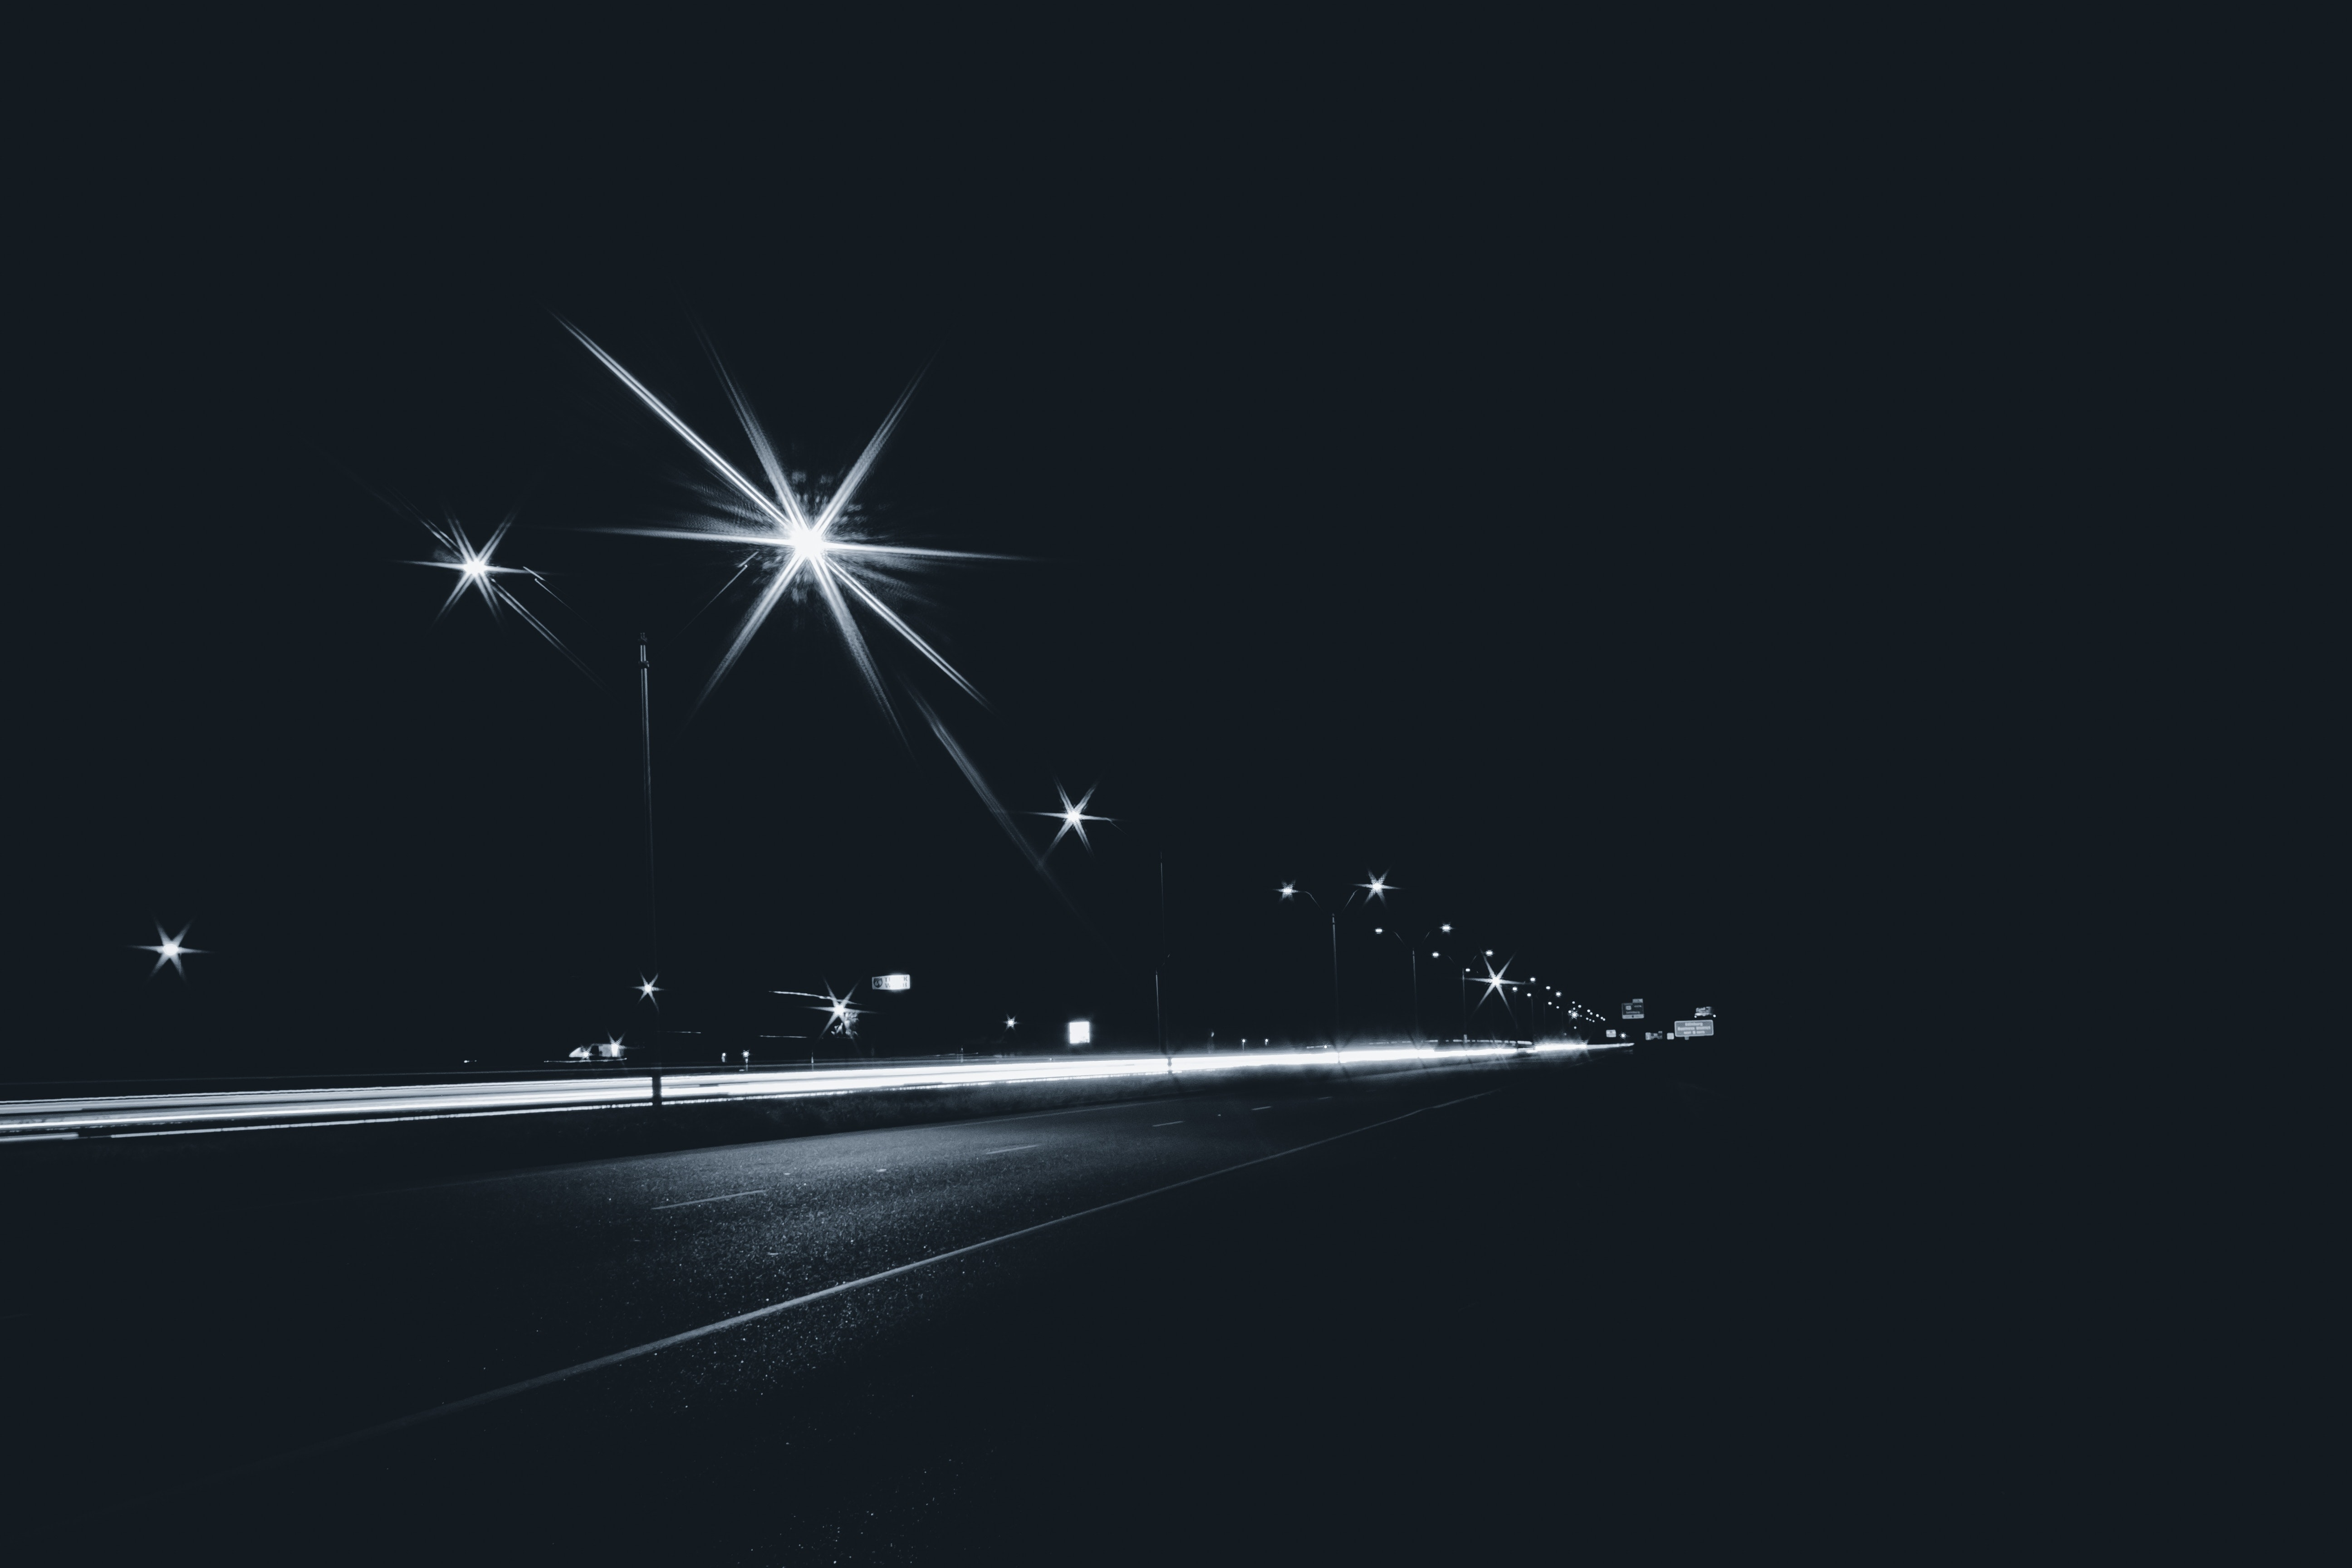 grayscale photography of street lights